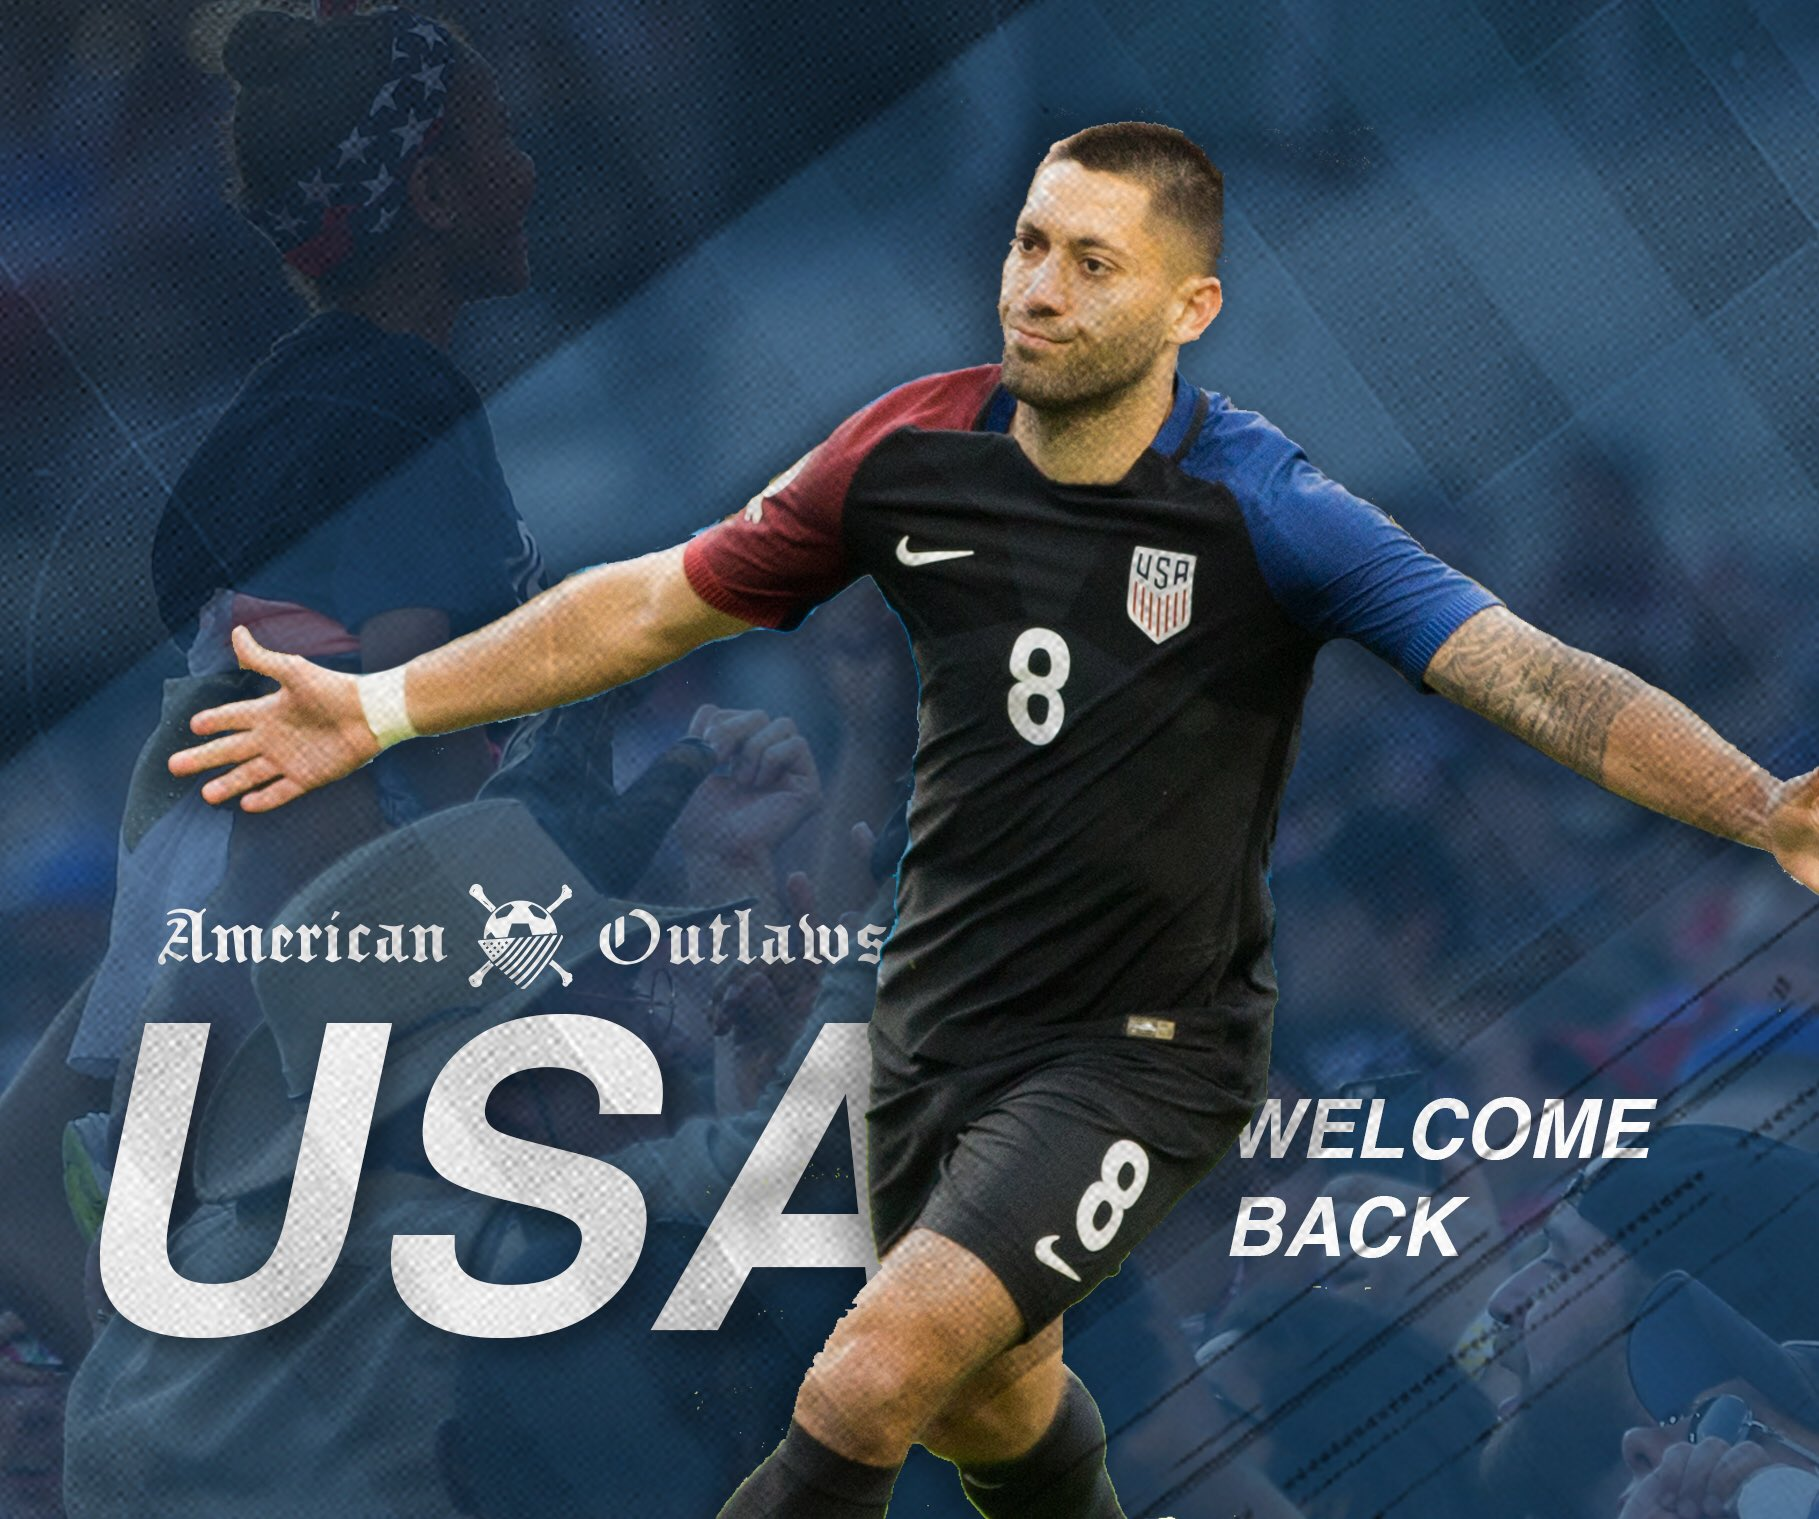 Oh and glad to have you back @clint_dempsey https://t.co/gi5L8bytFP